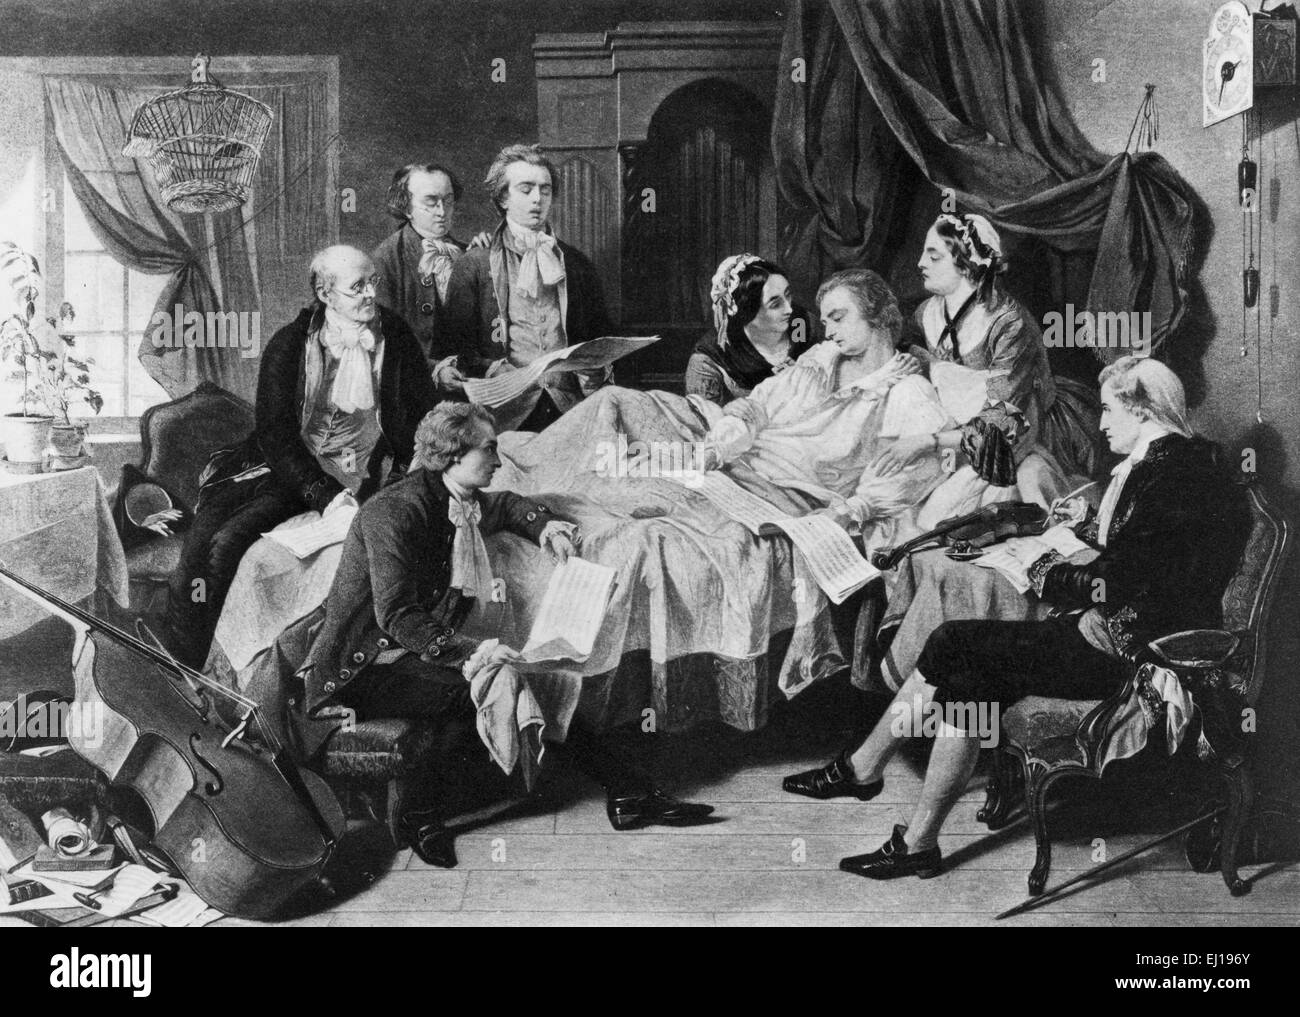 WOLFGANG AMADEUS MOZART (1756-1791) Deathbed scene from a painting by Henry O'Neil about 1860 - Stock Image